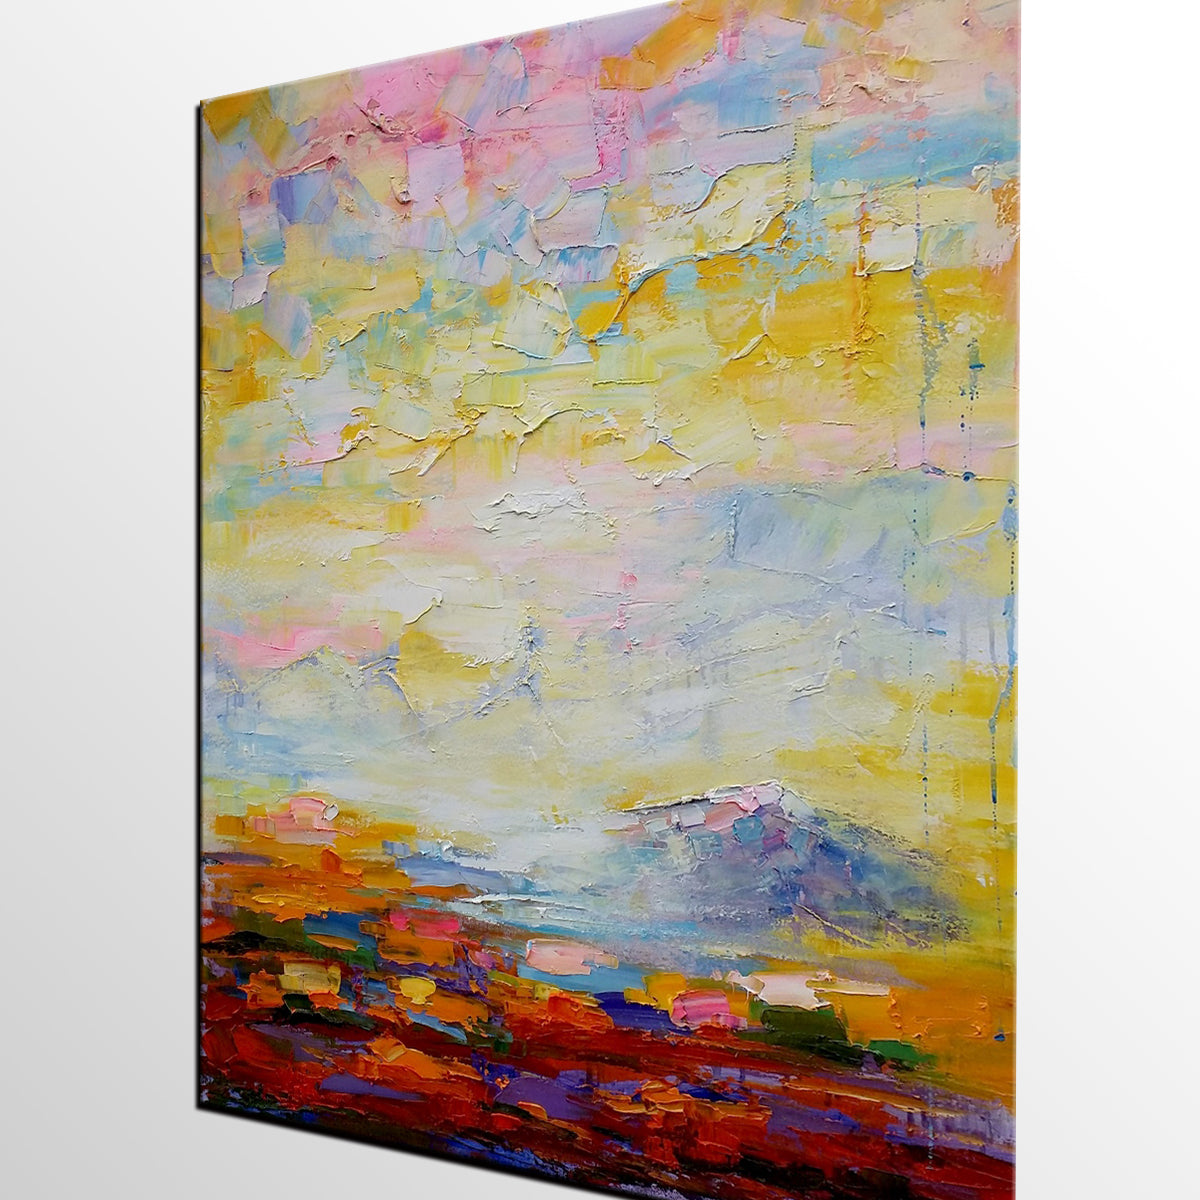 Original Wall Art, Abstract Landscape Painting, Canvas Wall Art, Abstract Artwork, Oil Painting